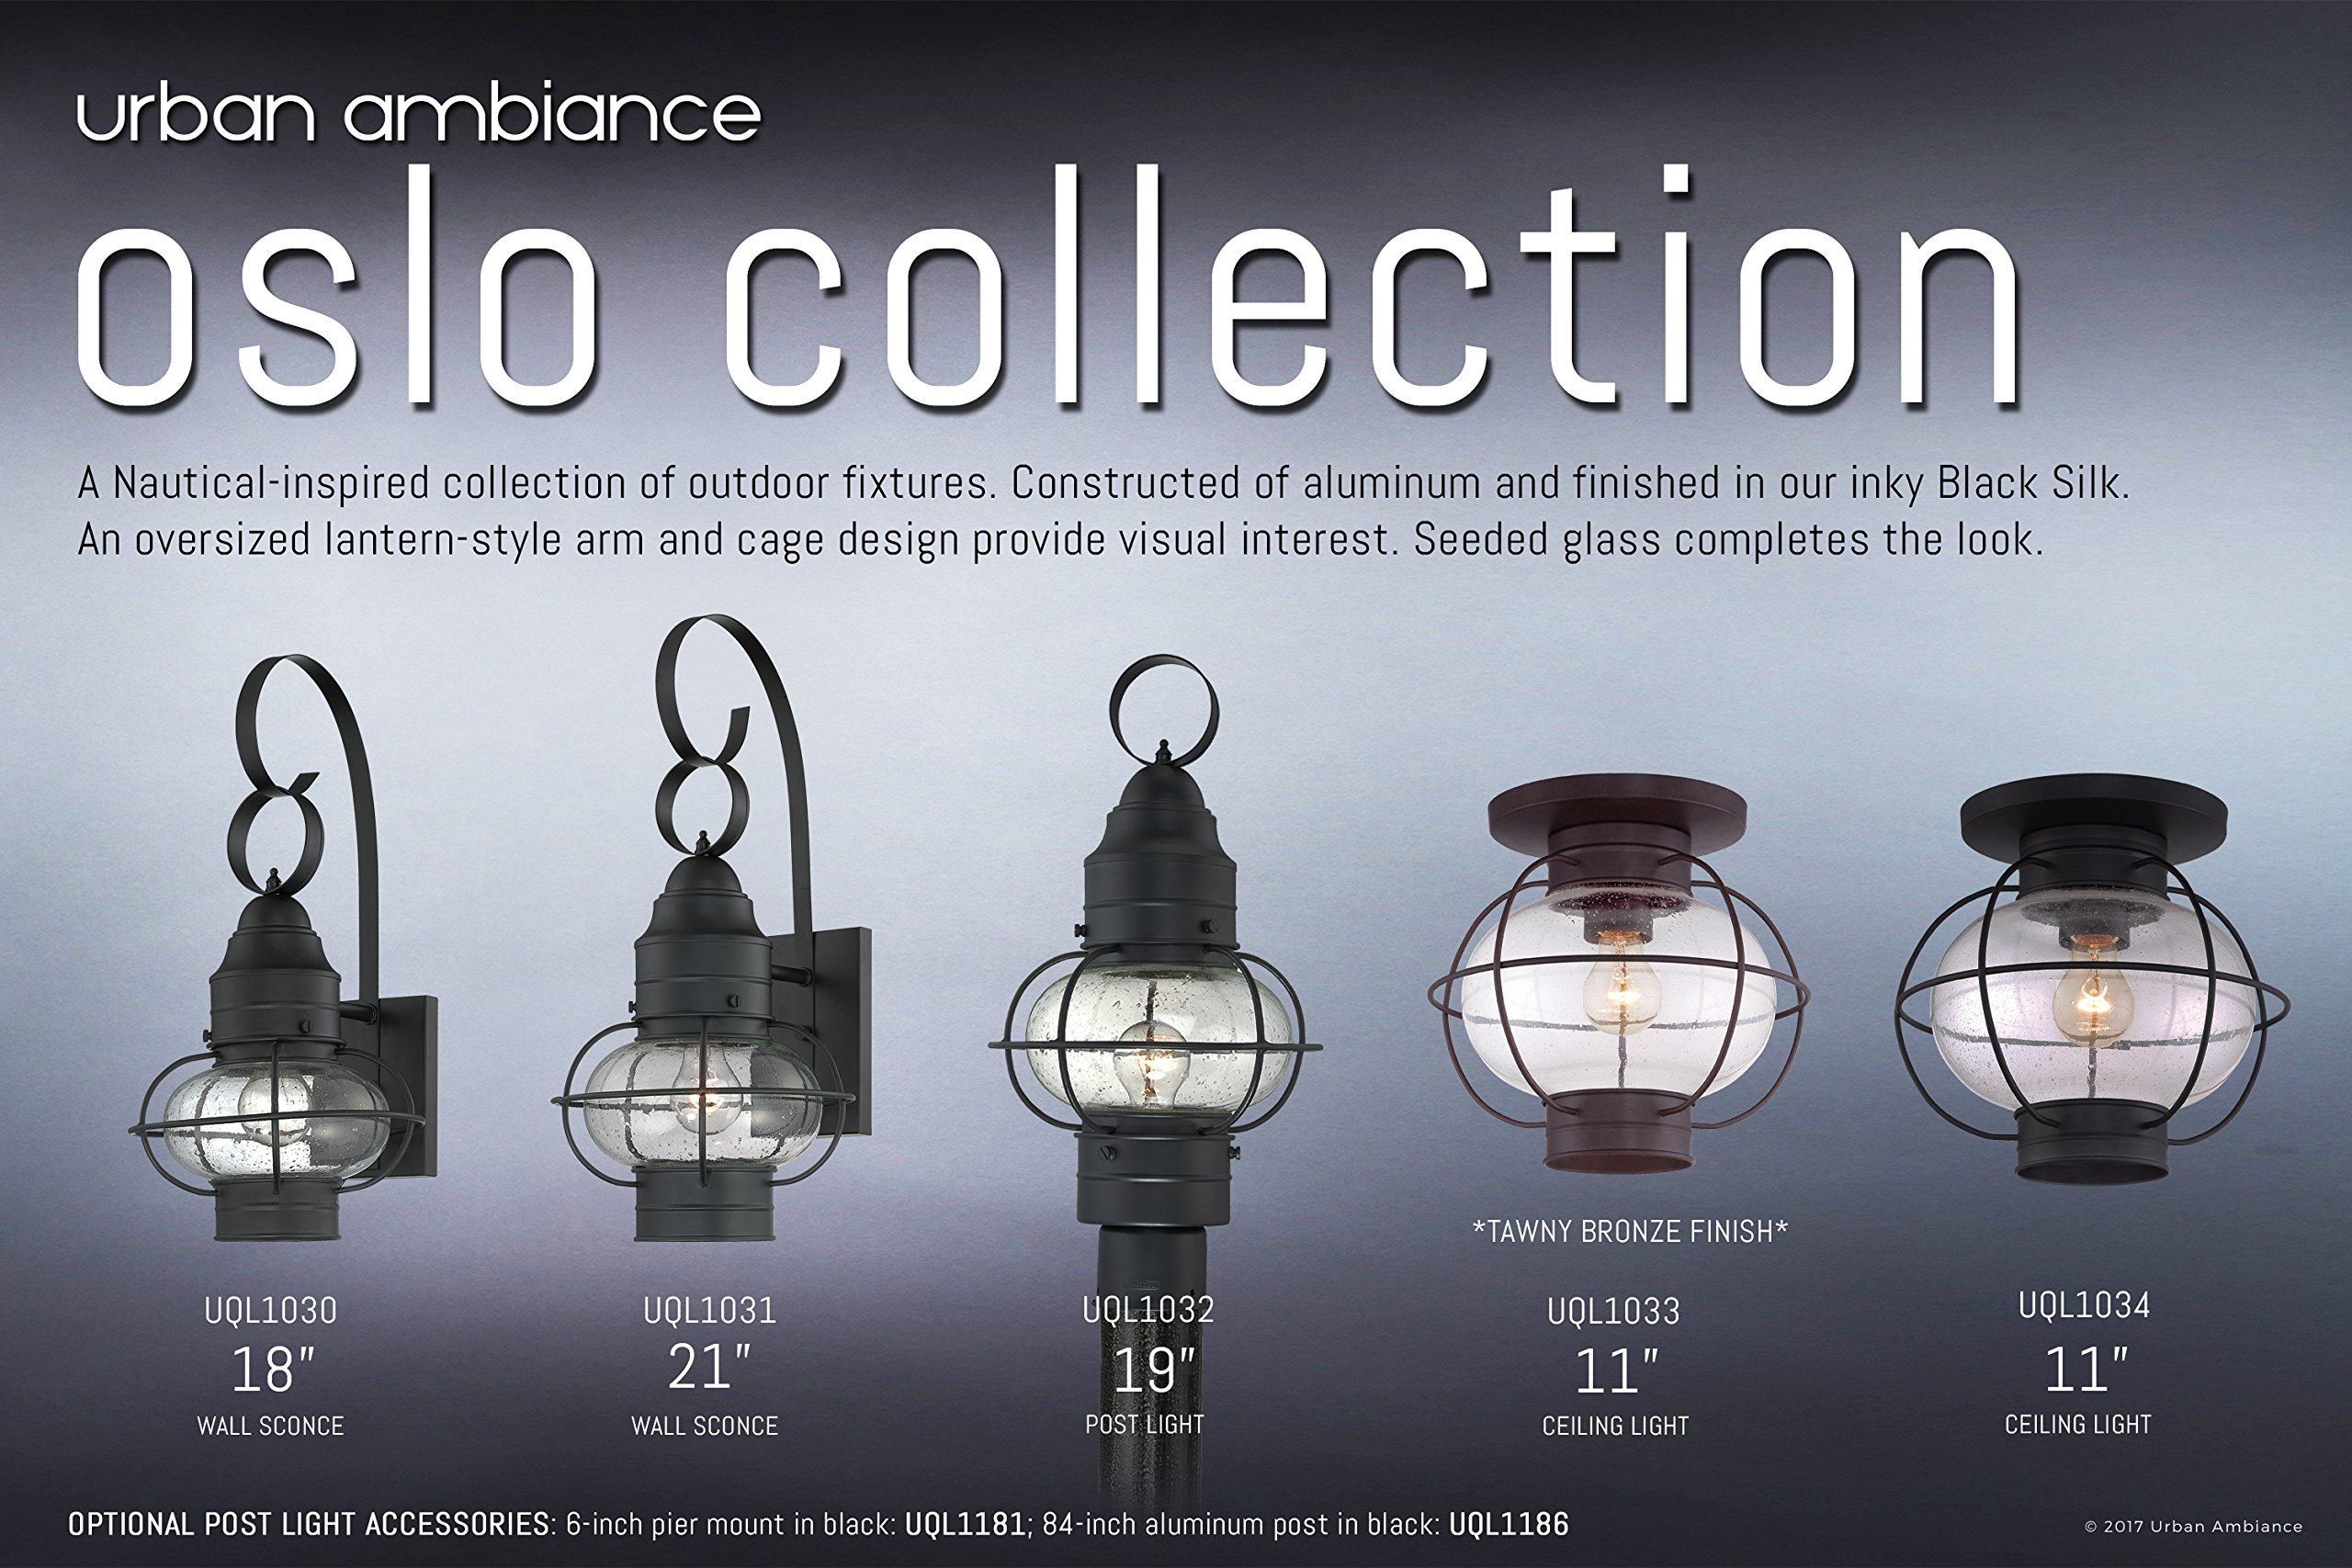 Luxury Nautical Outdoor Ceiling Light, Small Size: 10.5''H x 11.5''W, with Art Deco Style Elements, Cage Design, Bold Tawny Bronze Finish and Seeded Glass, UQL1033 by Urban Ambiance by Urban Ambiance (Image #6)